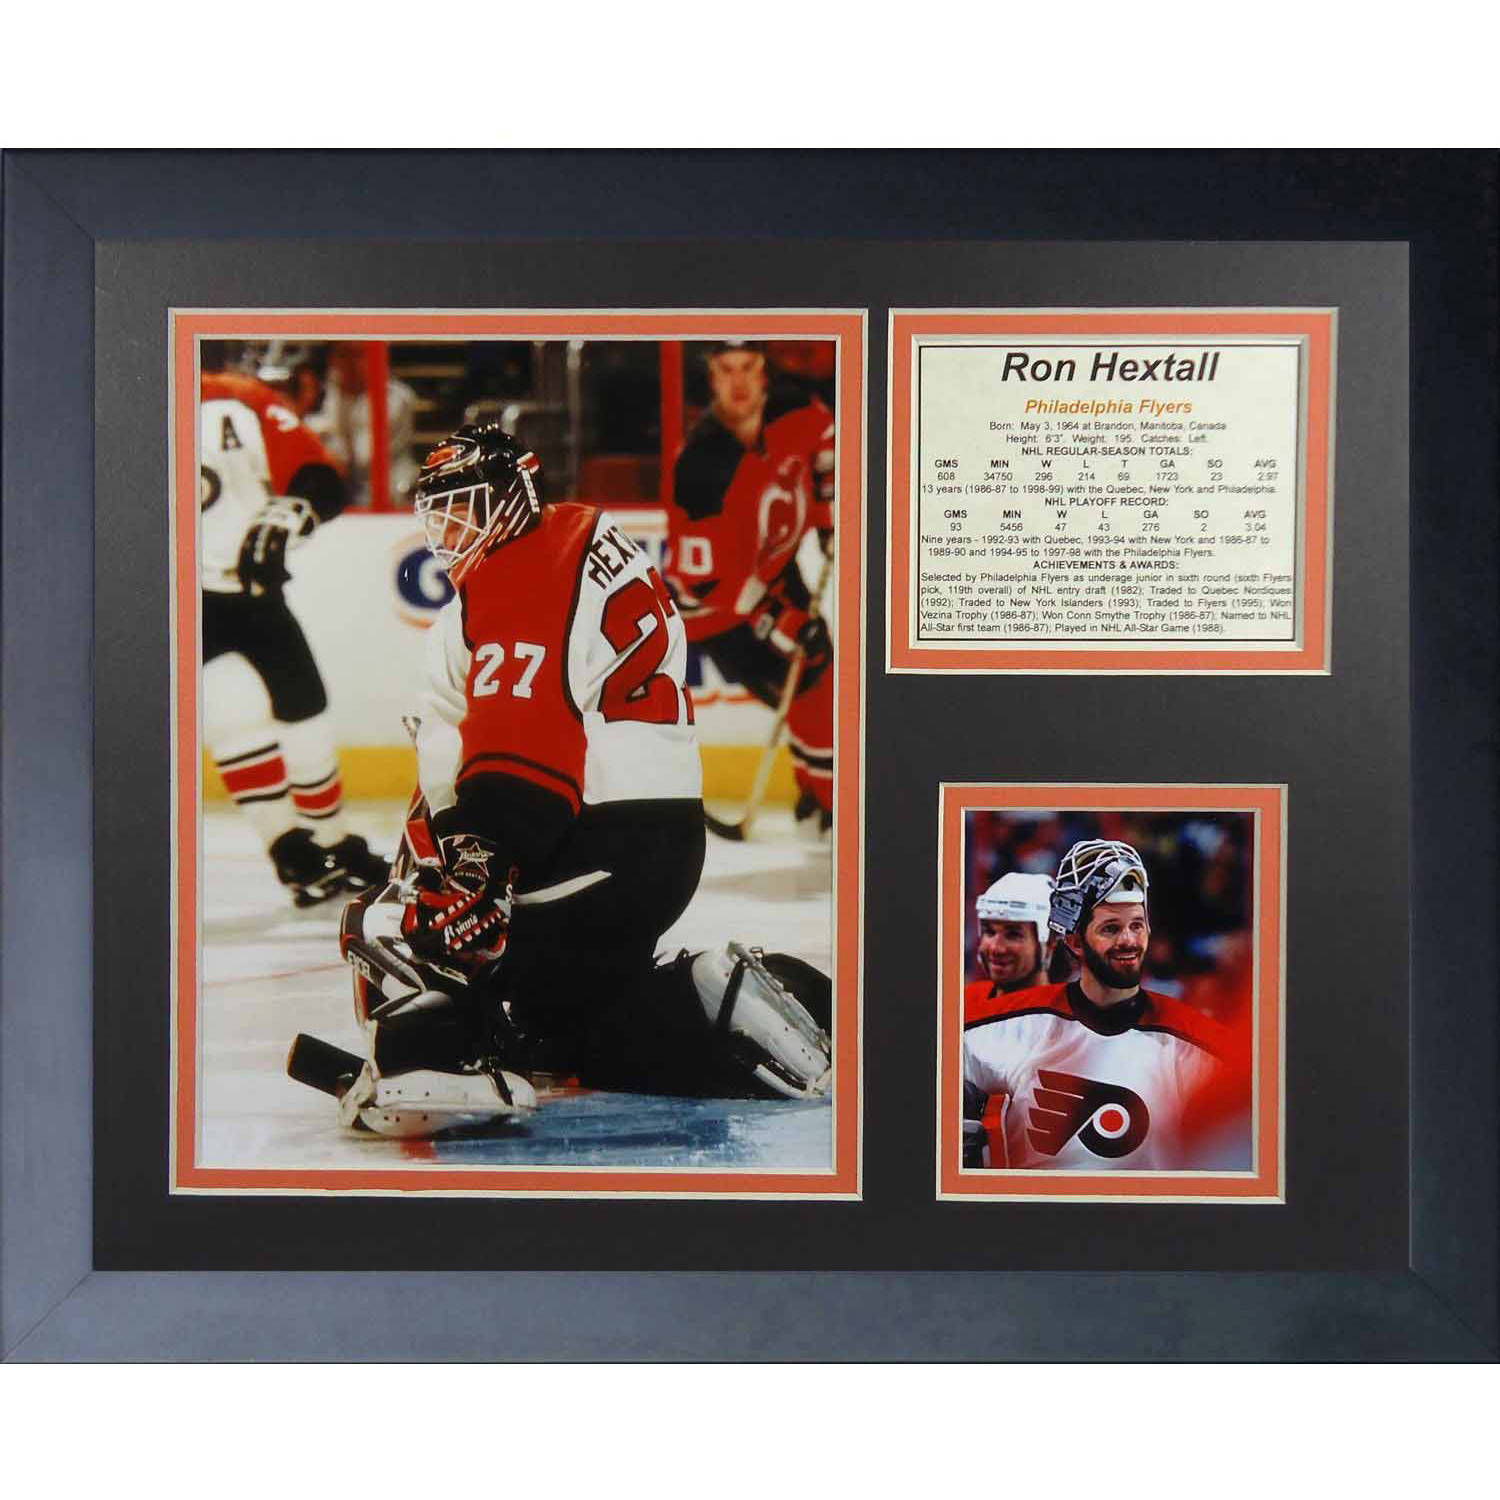 "Legends Never Die Ron Hextall Philadelphia Flyers Collage Photo Frame, 11"" x 14"""